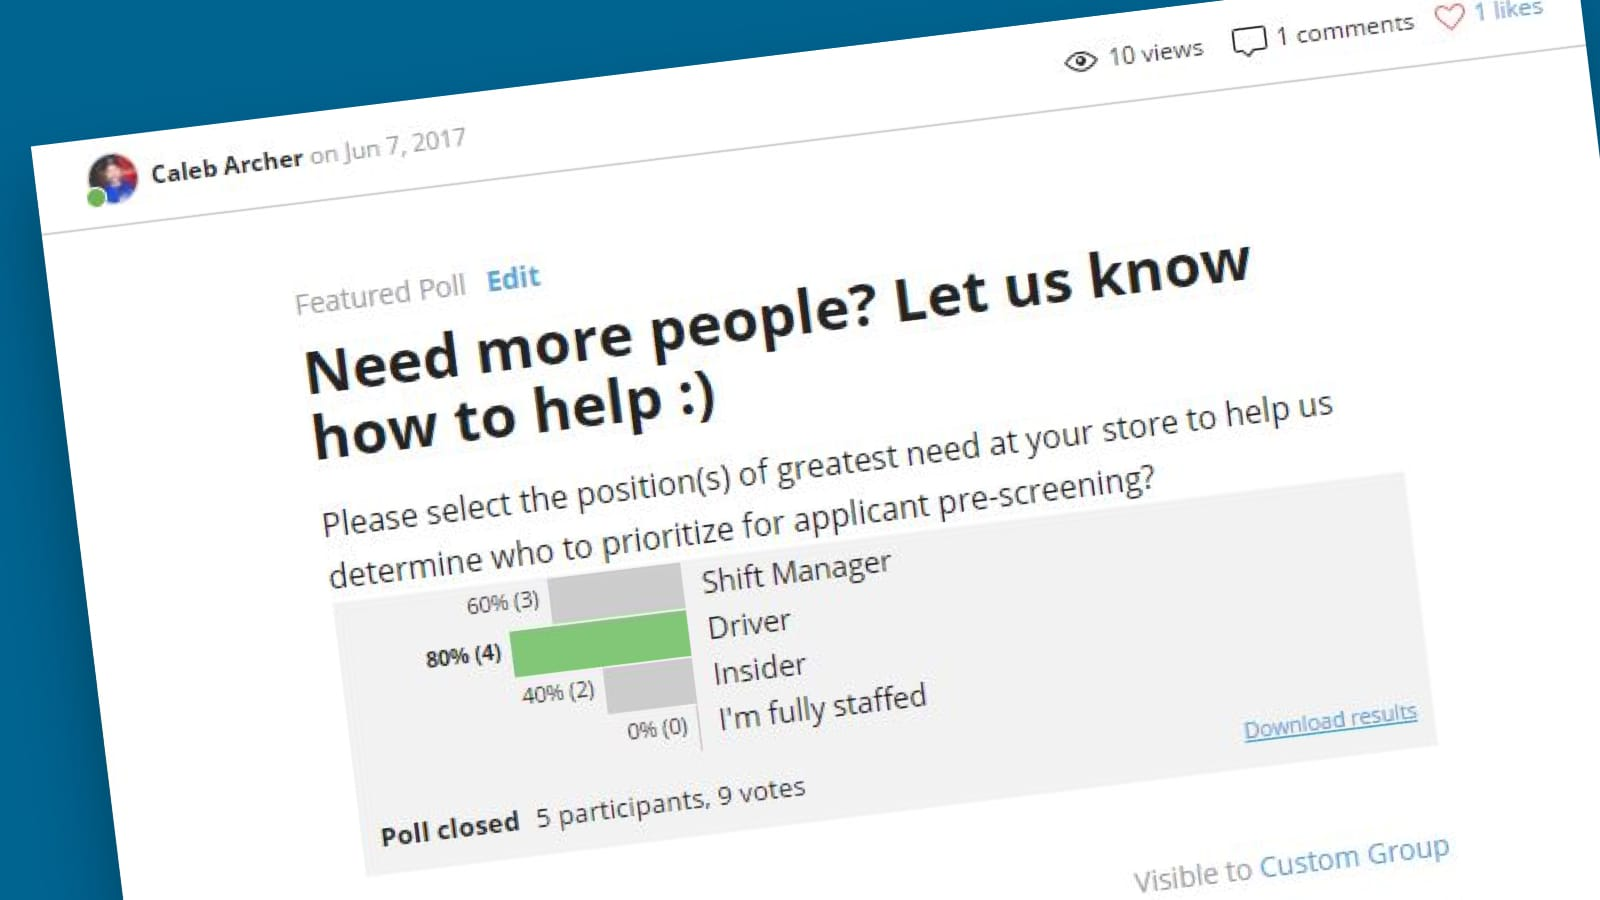 M&G using Polls to manage resources